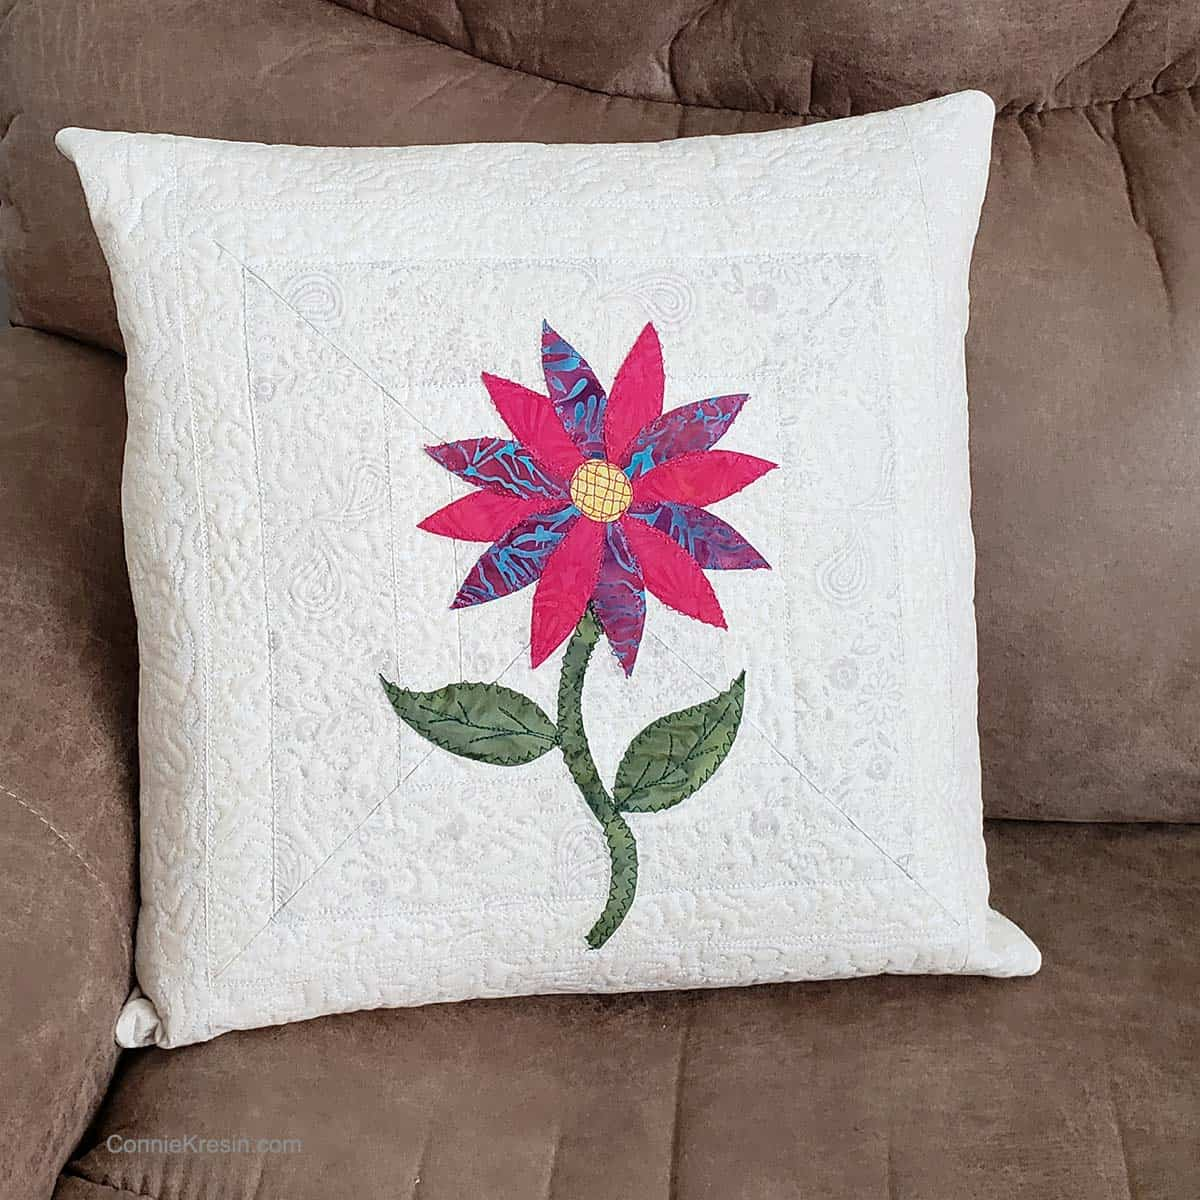 Appliqued flower pillow on couch